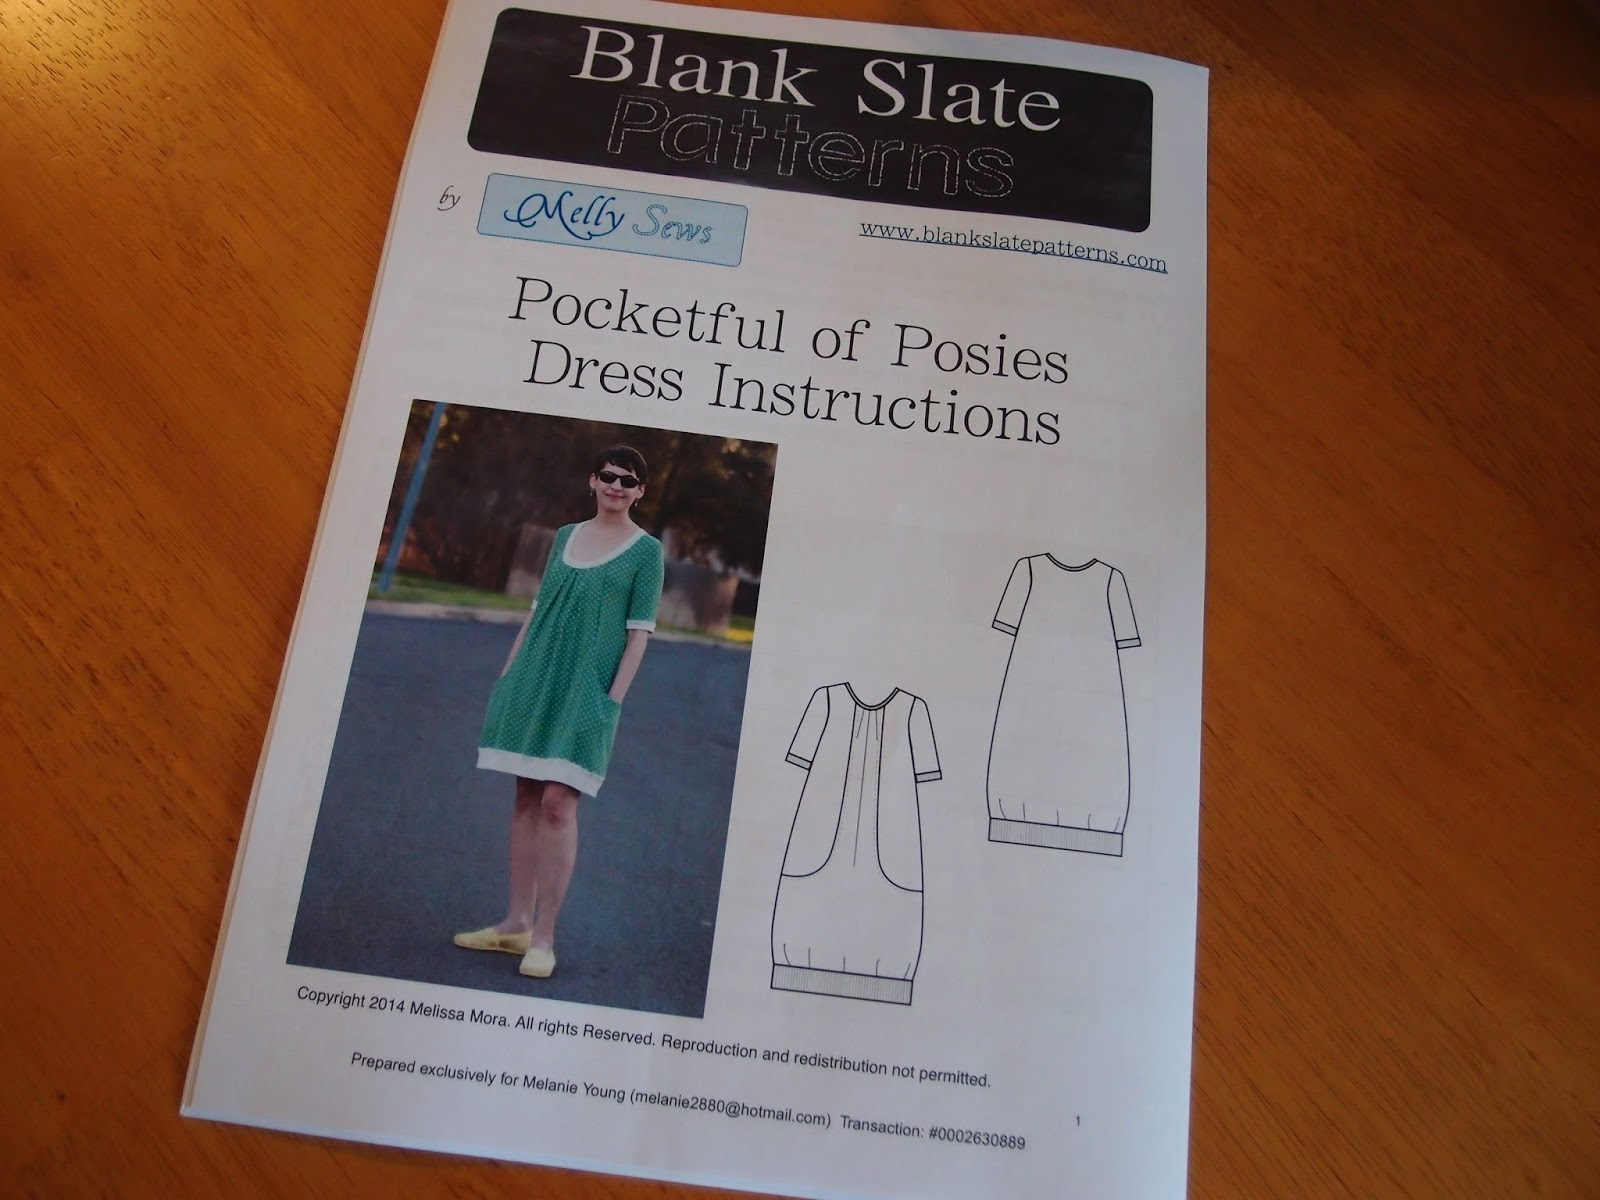 Made by melanie the yumyuck pocket full of posies dress whilst im loving sewing my coco dresses i dont want to be a one trick pony and i thought this pattern would allow me to mix things up a bit jeuxipadfo Gallery